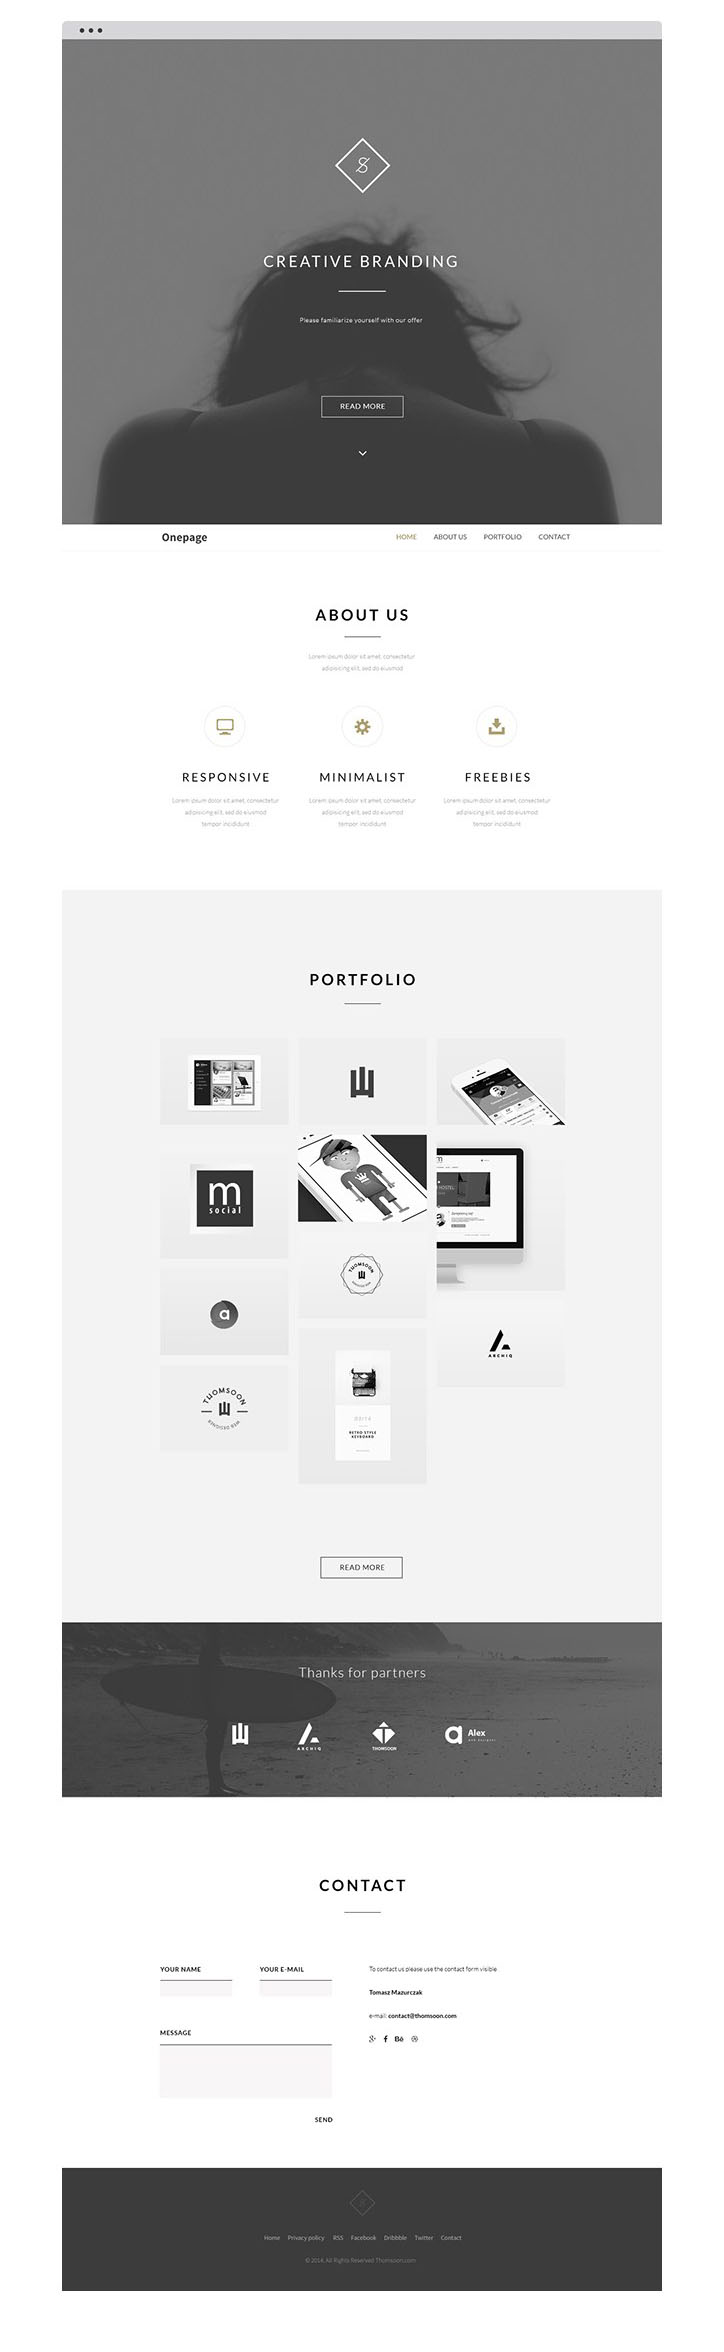 free-landing-page-behance-api-download-psd